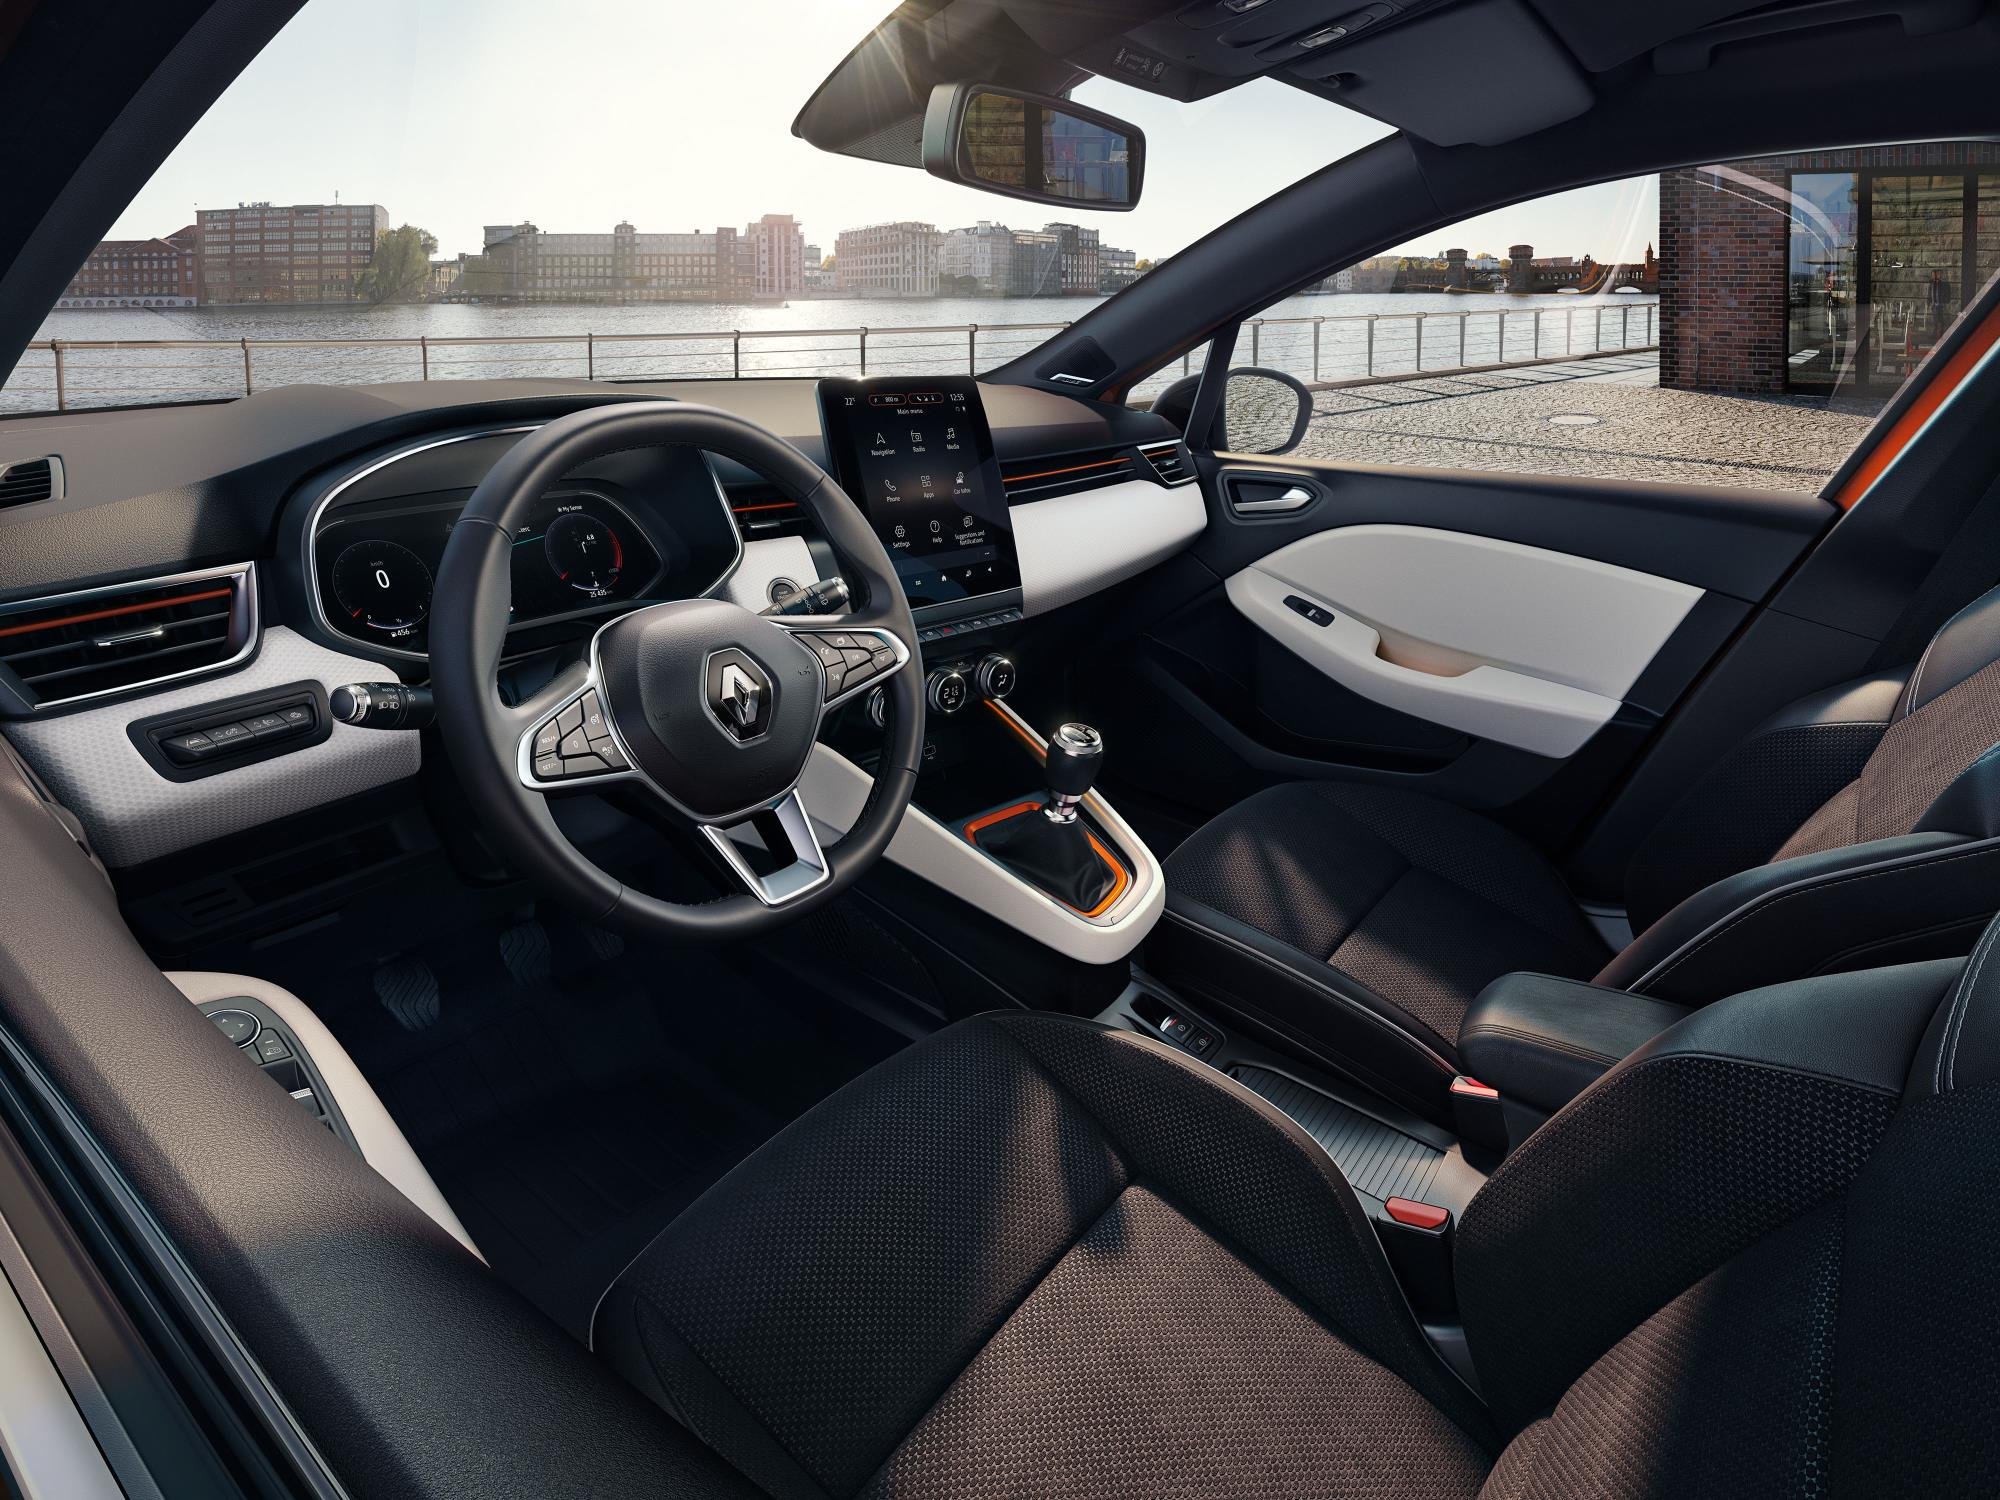 New Clio Interior 2 175x175 At Are Digital Instruments Coming To Affordable Cars Renault